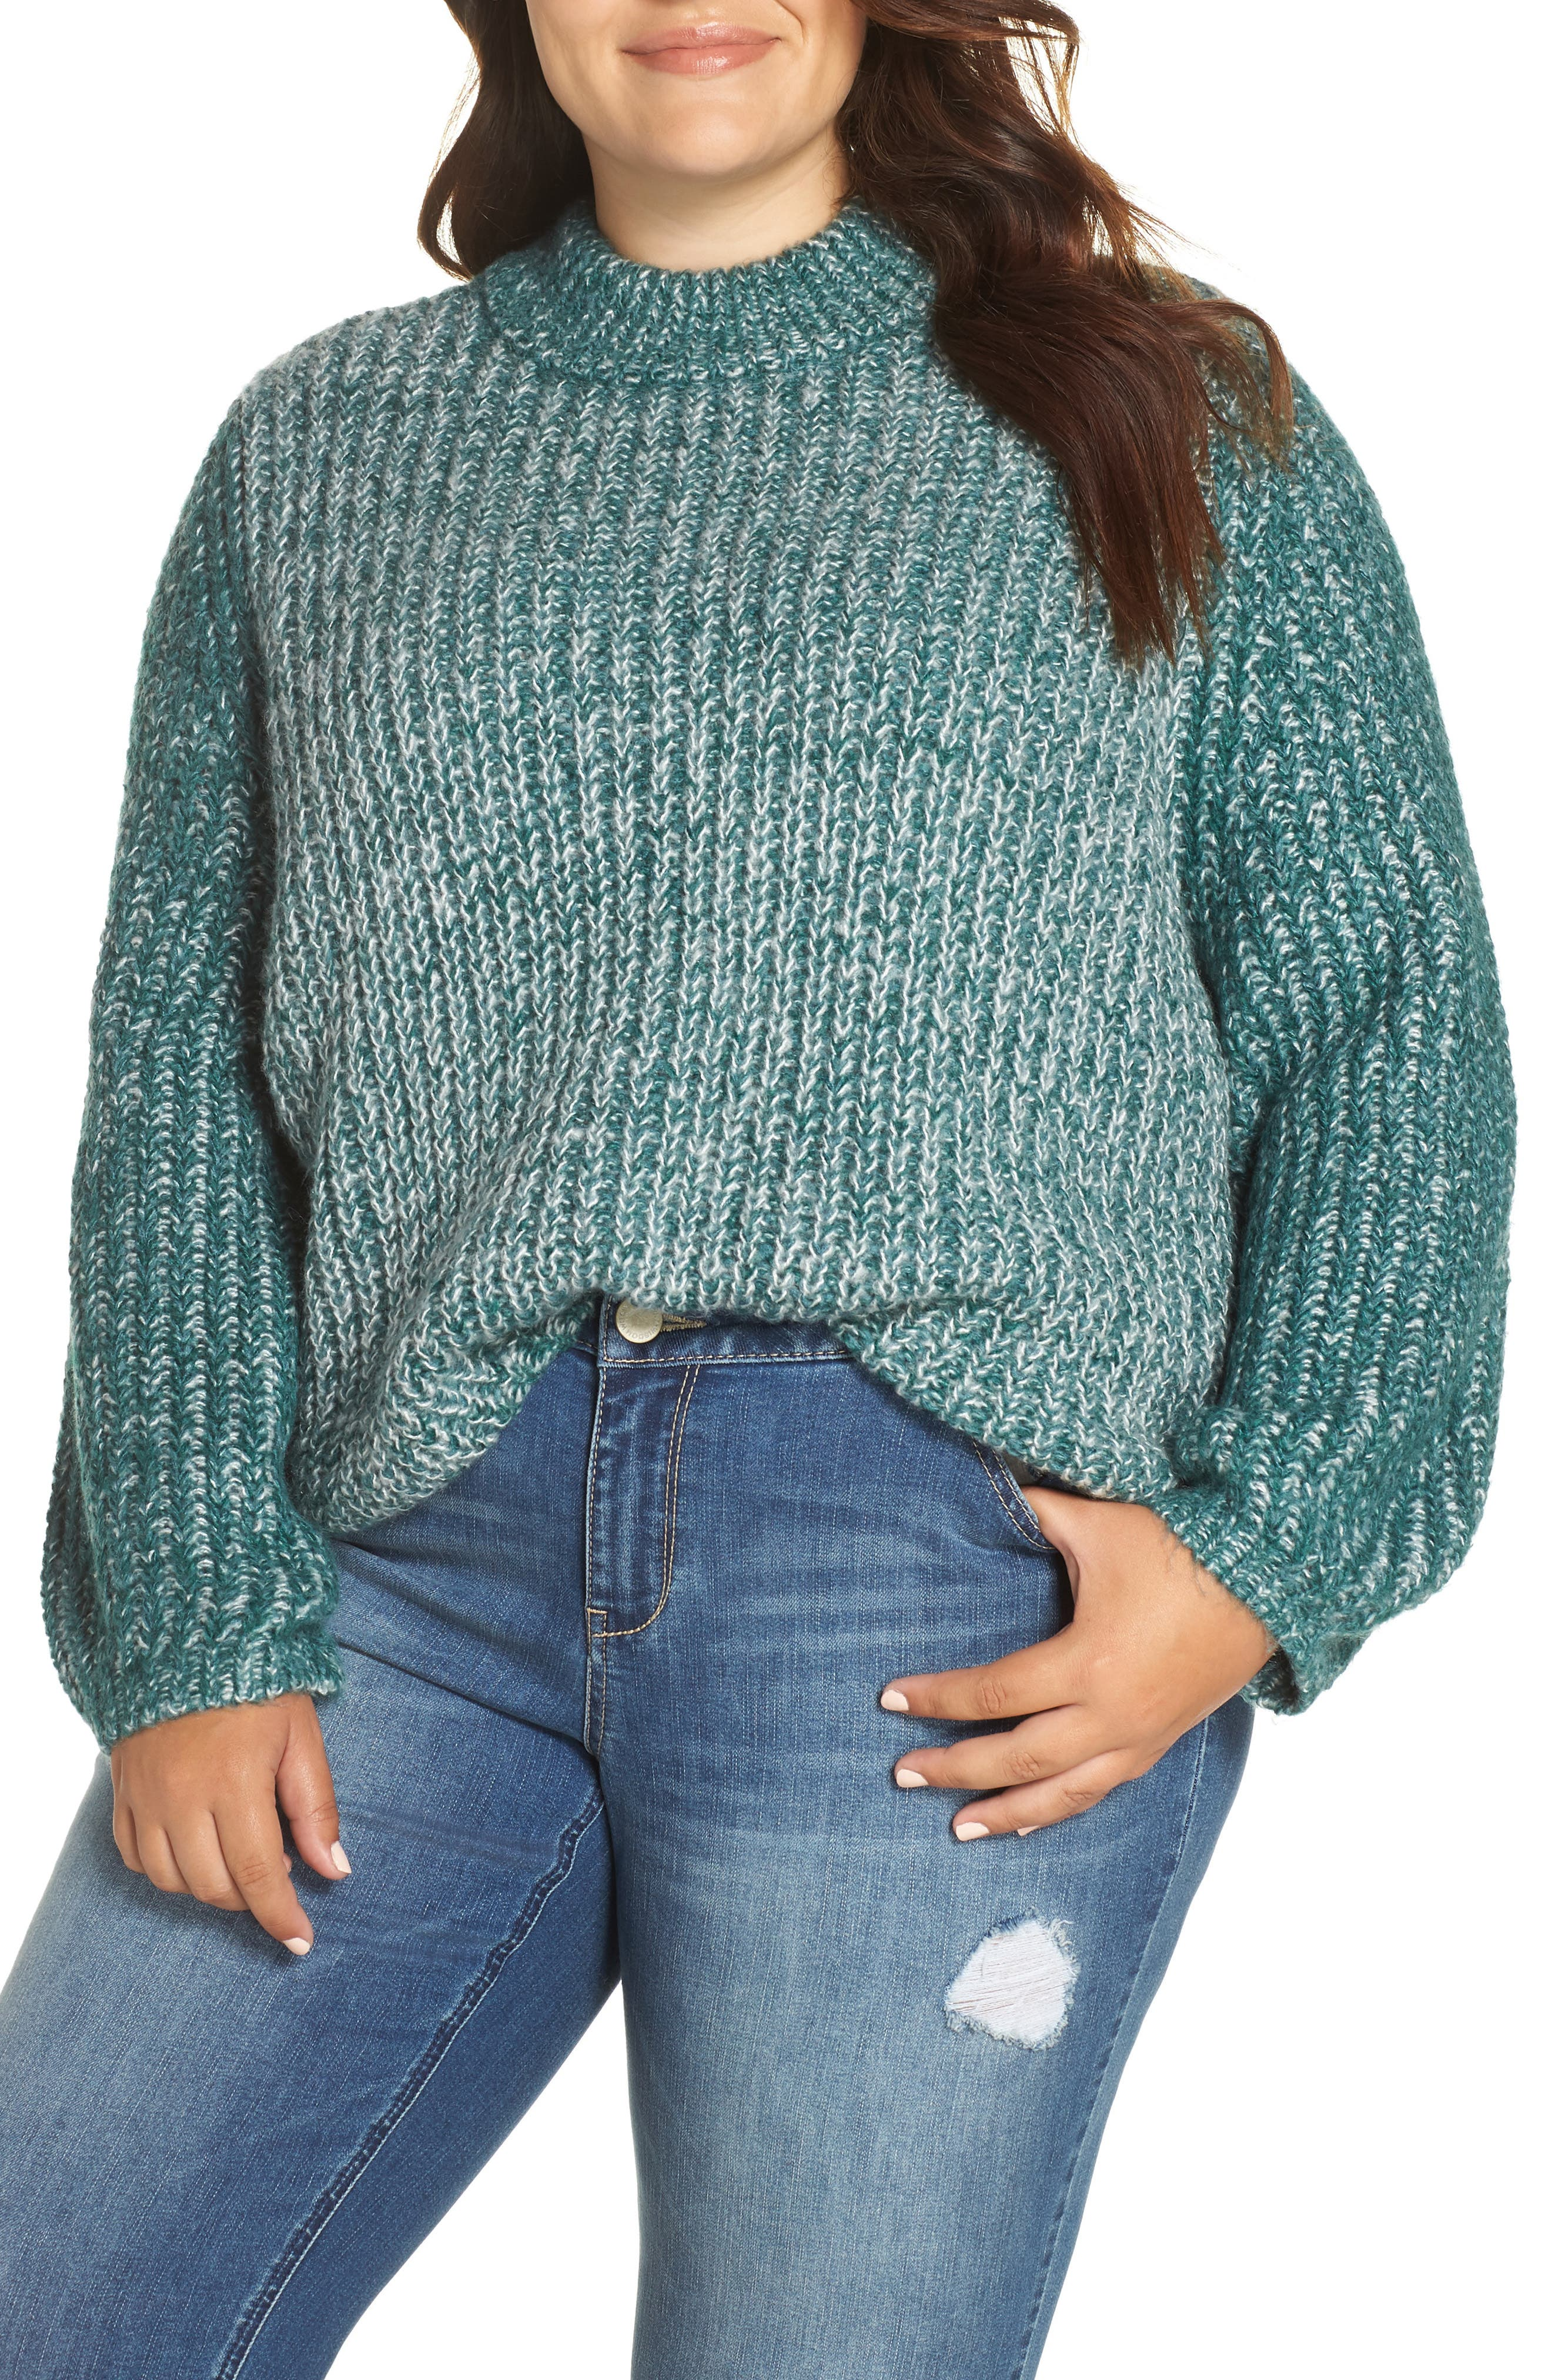 Marl Knit Sweater,                             Main thumbnail 1, color,                             TEAL HYDRO